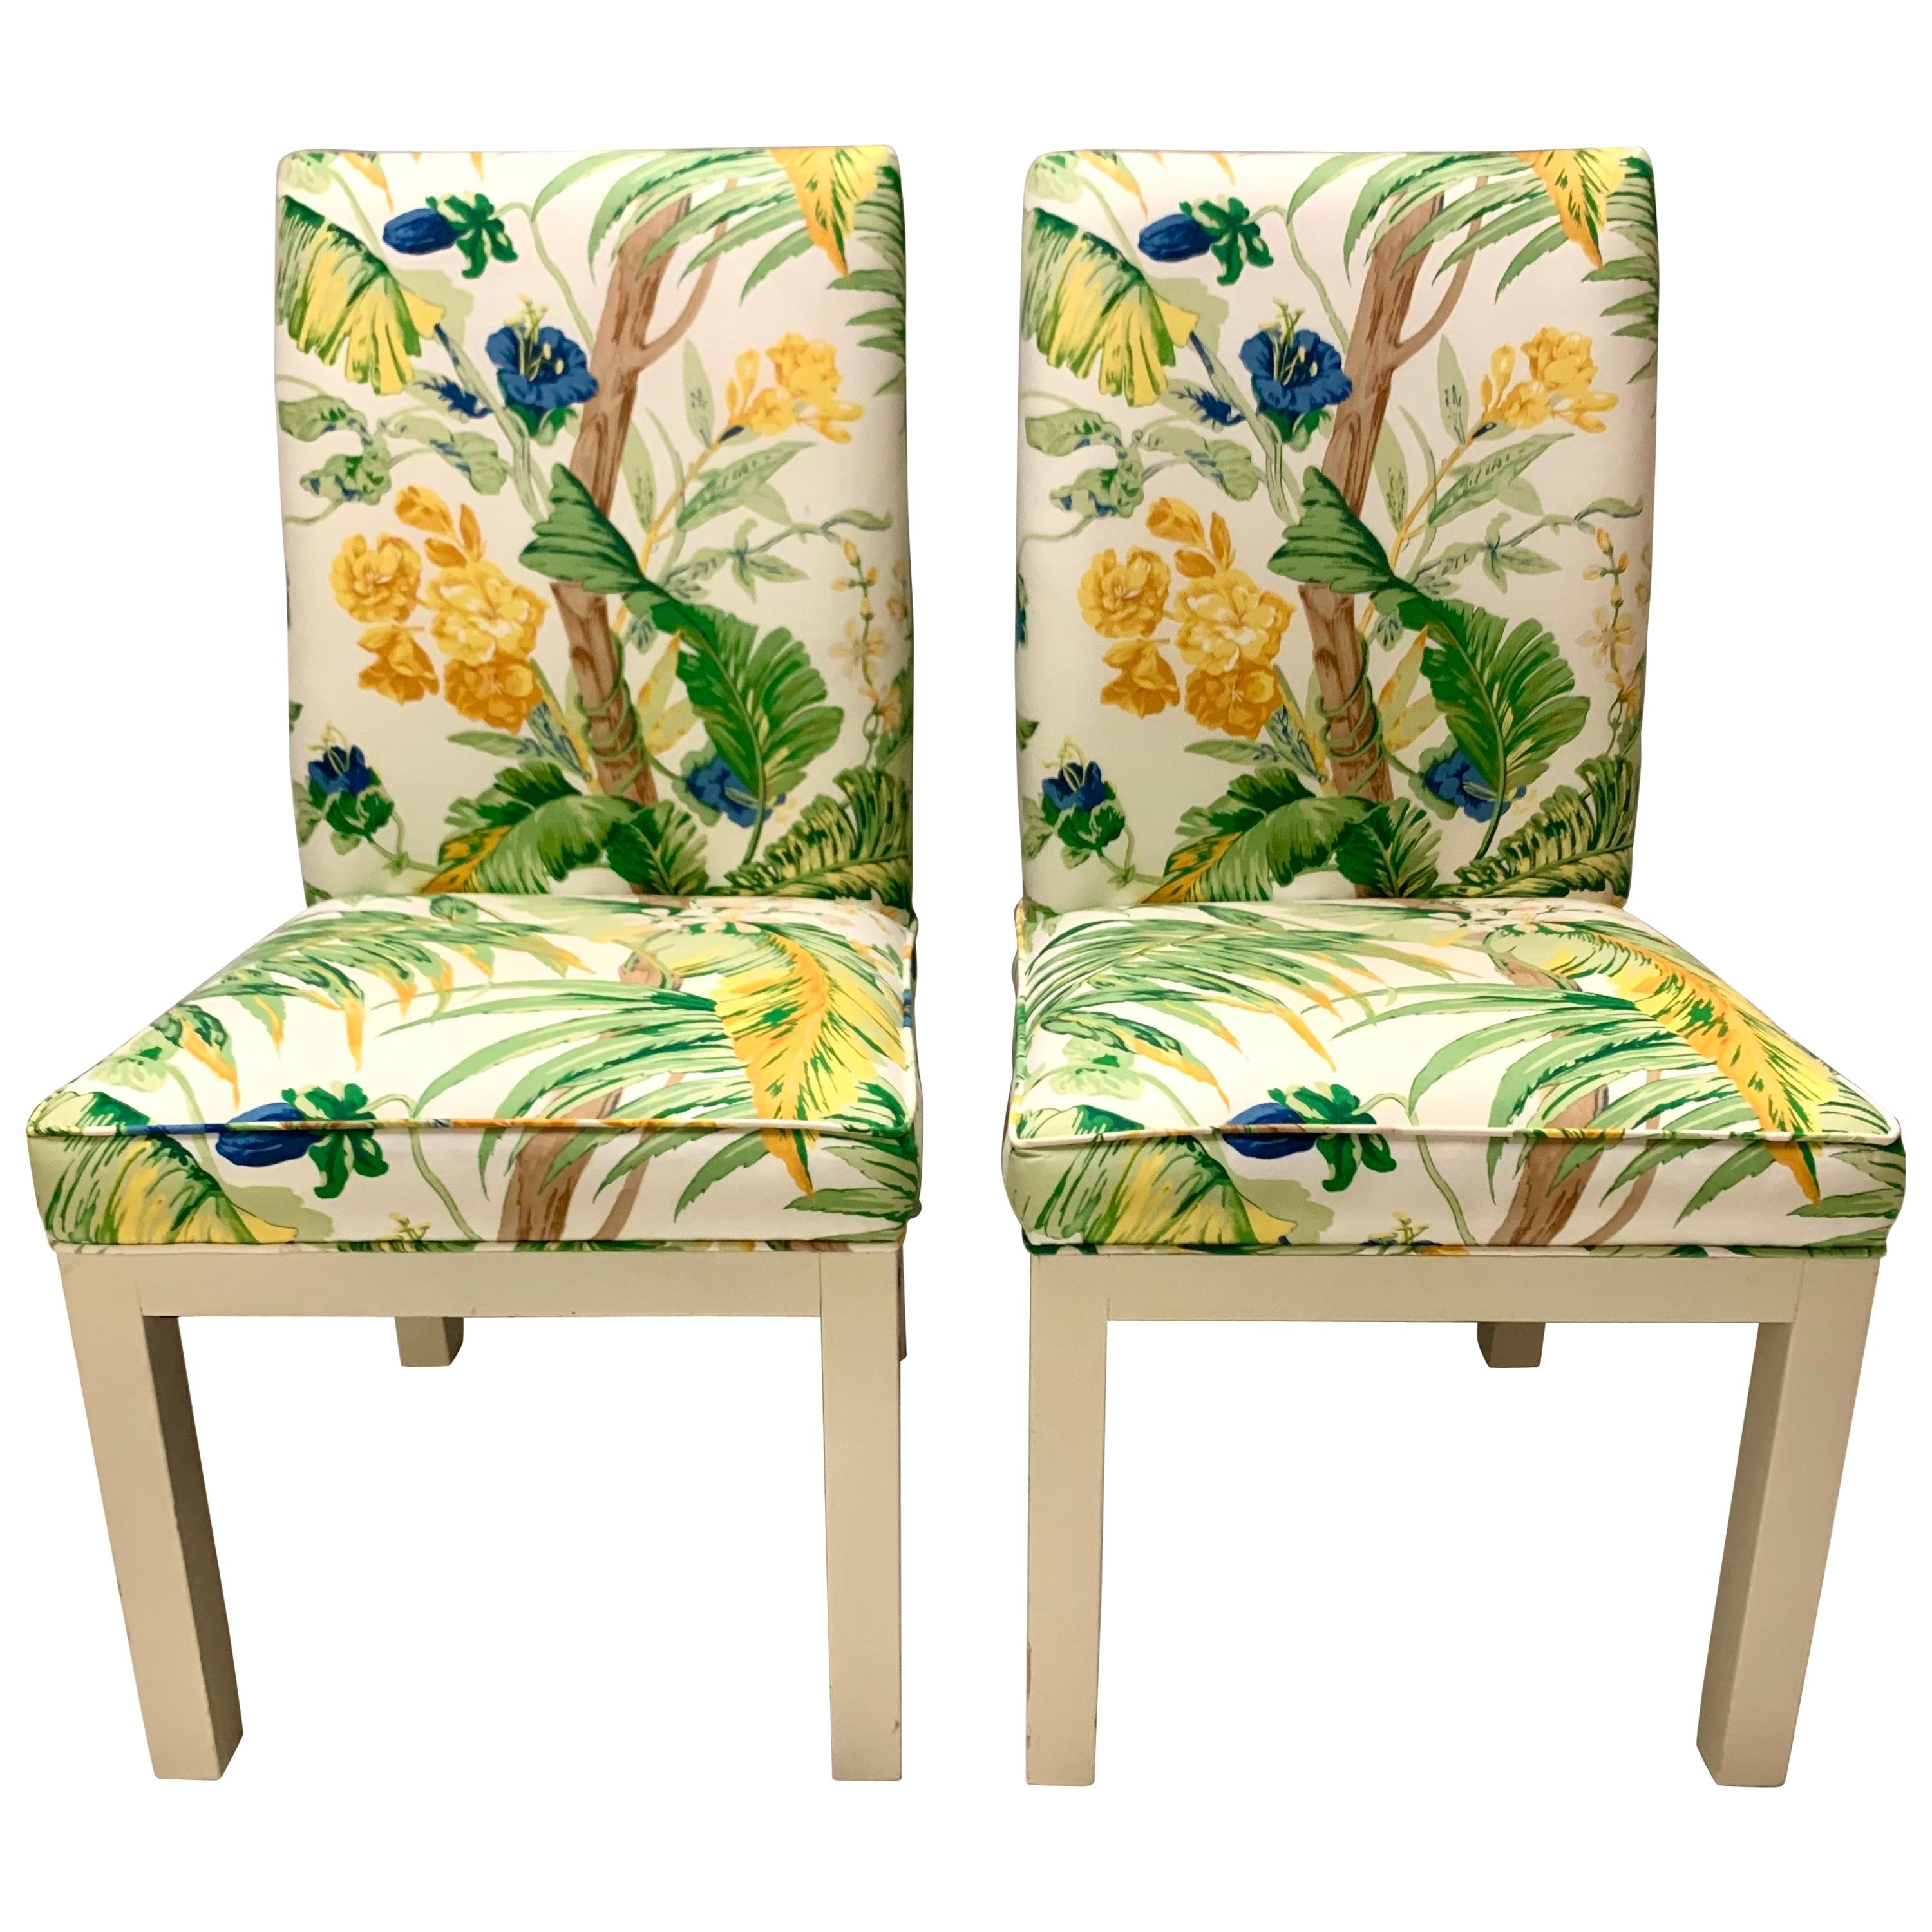 Pair of Vintage Newly Upholstered Slipper Chairs Lee Jofa Lilly Pulitzer Fabric